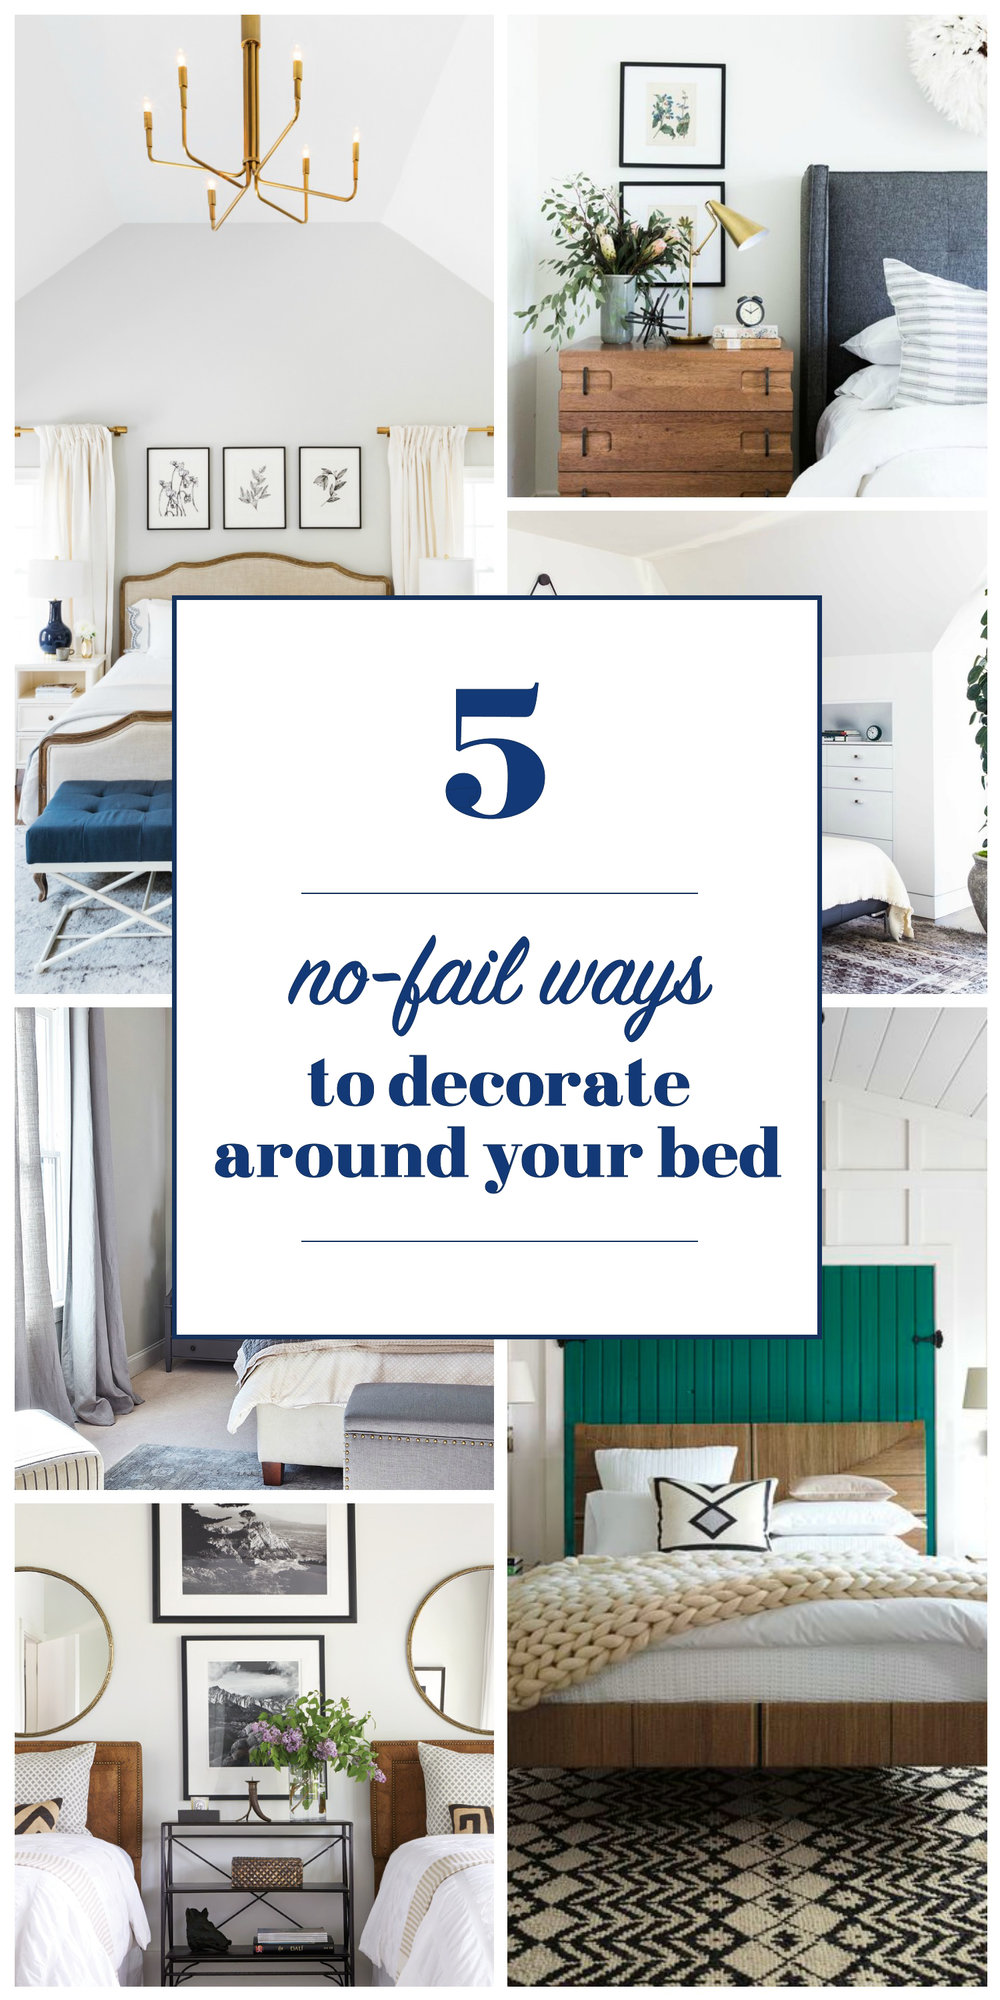 Discover five no-fail ways to decorate around a bed. // art above bed, mirrors above bed, art above nightstands, mirrors above bedside tables